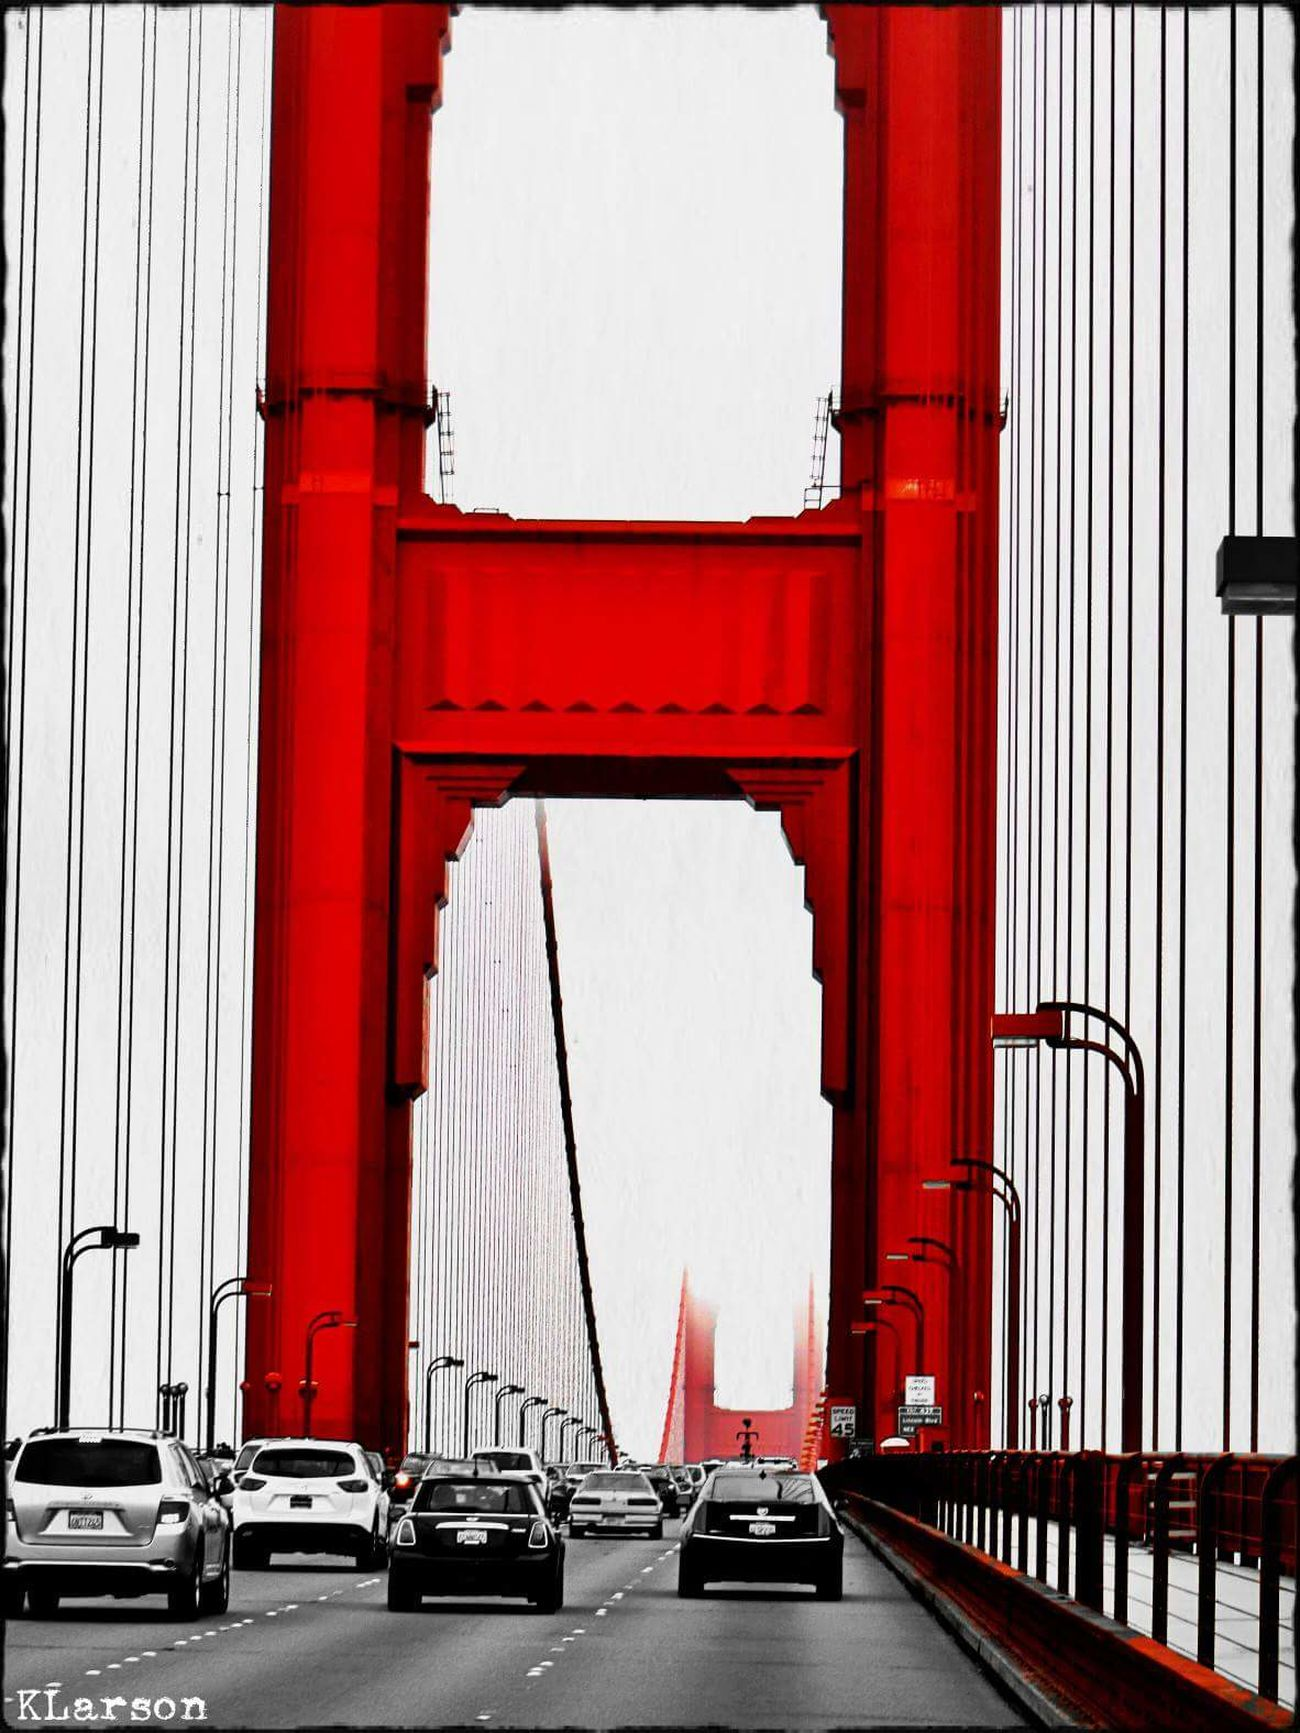 Red Transportation Bridge - Man Made Structure Built Structure Architecture Connection City No People Day Outdoors Golden Gate Bridge San Francisco Colorsplash EyeEmNewHere Eyeemphotography Bridge Traffic Lines Cars